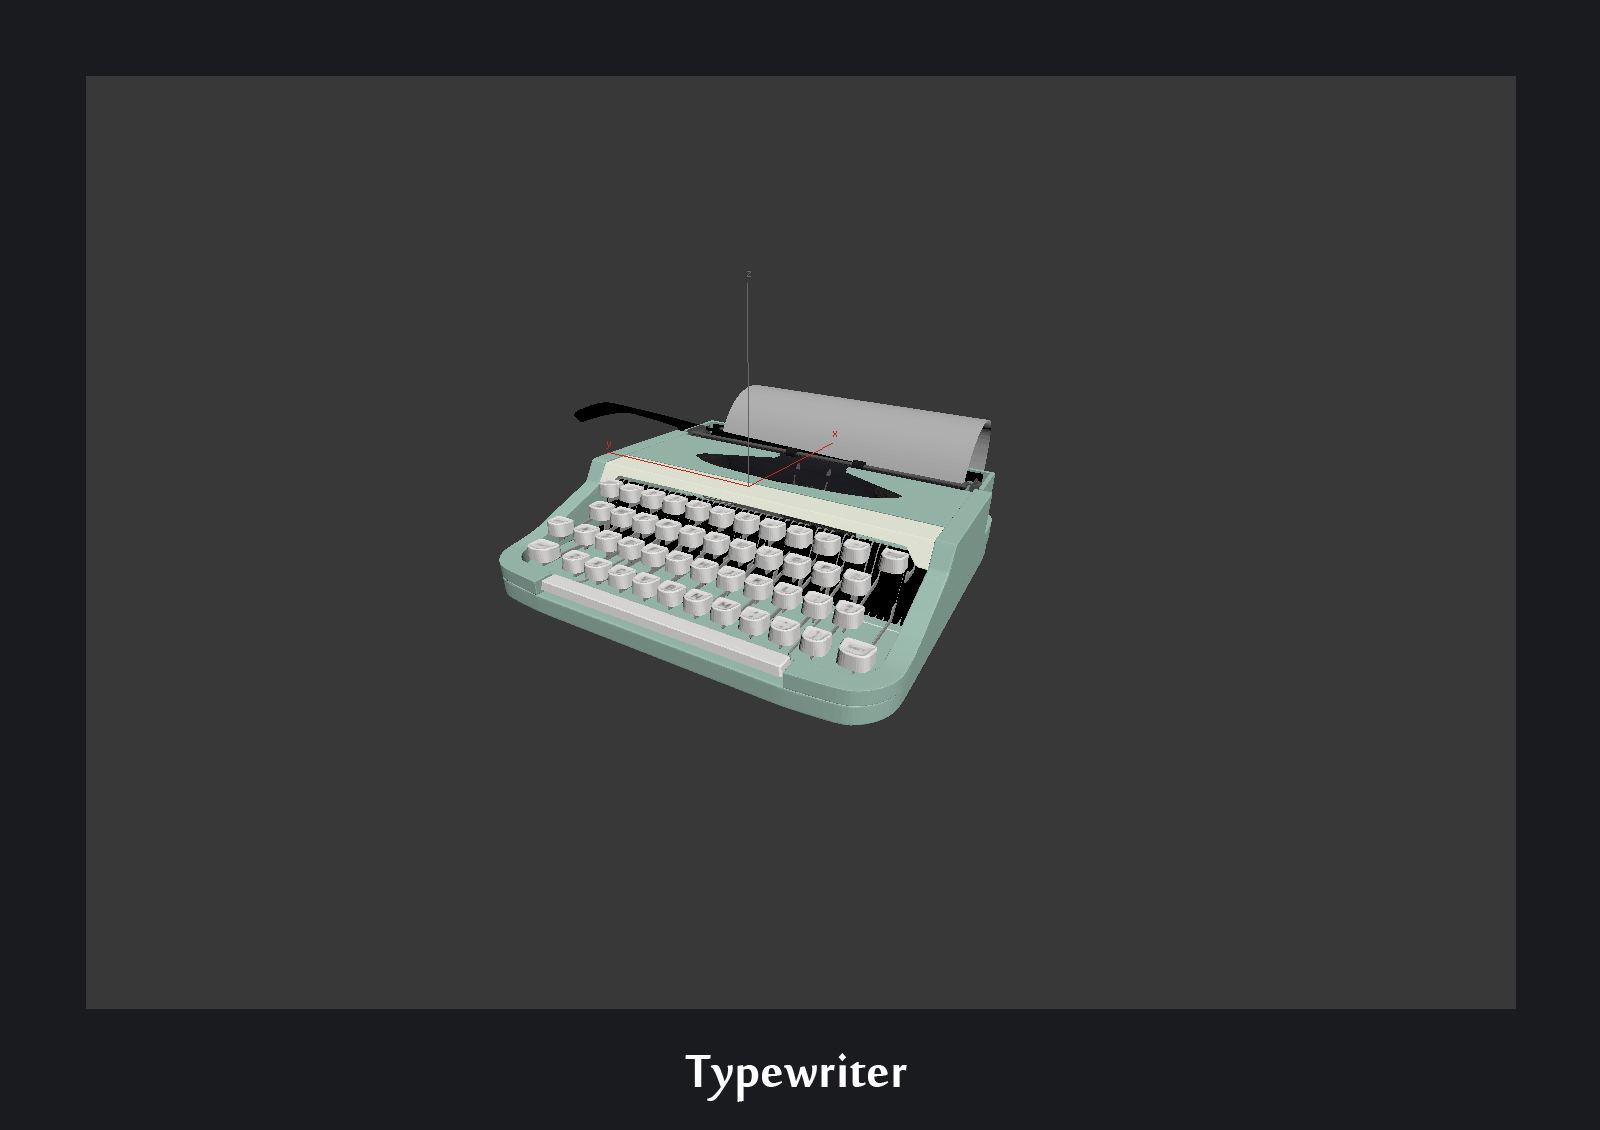 022_Typewriter_evermotion_058.jpg